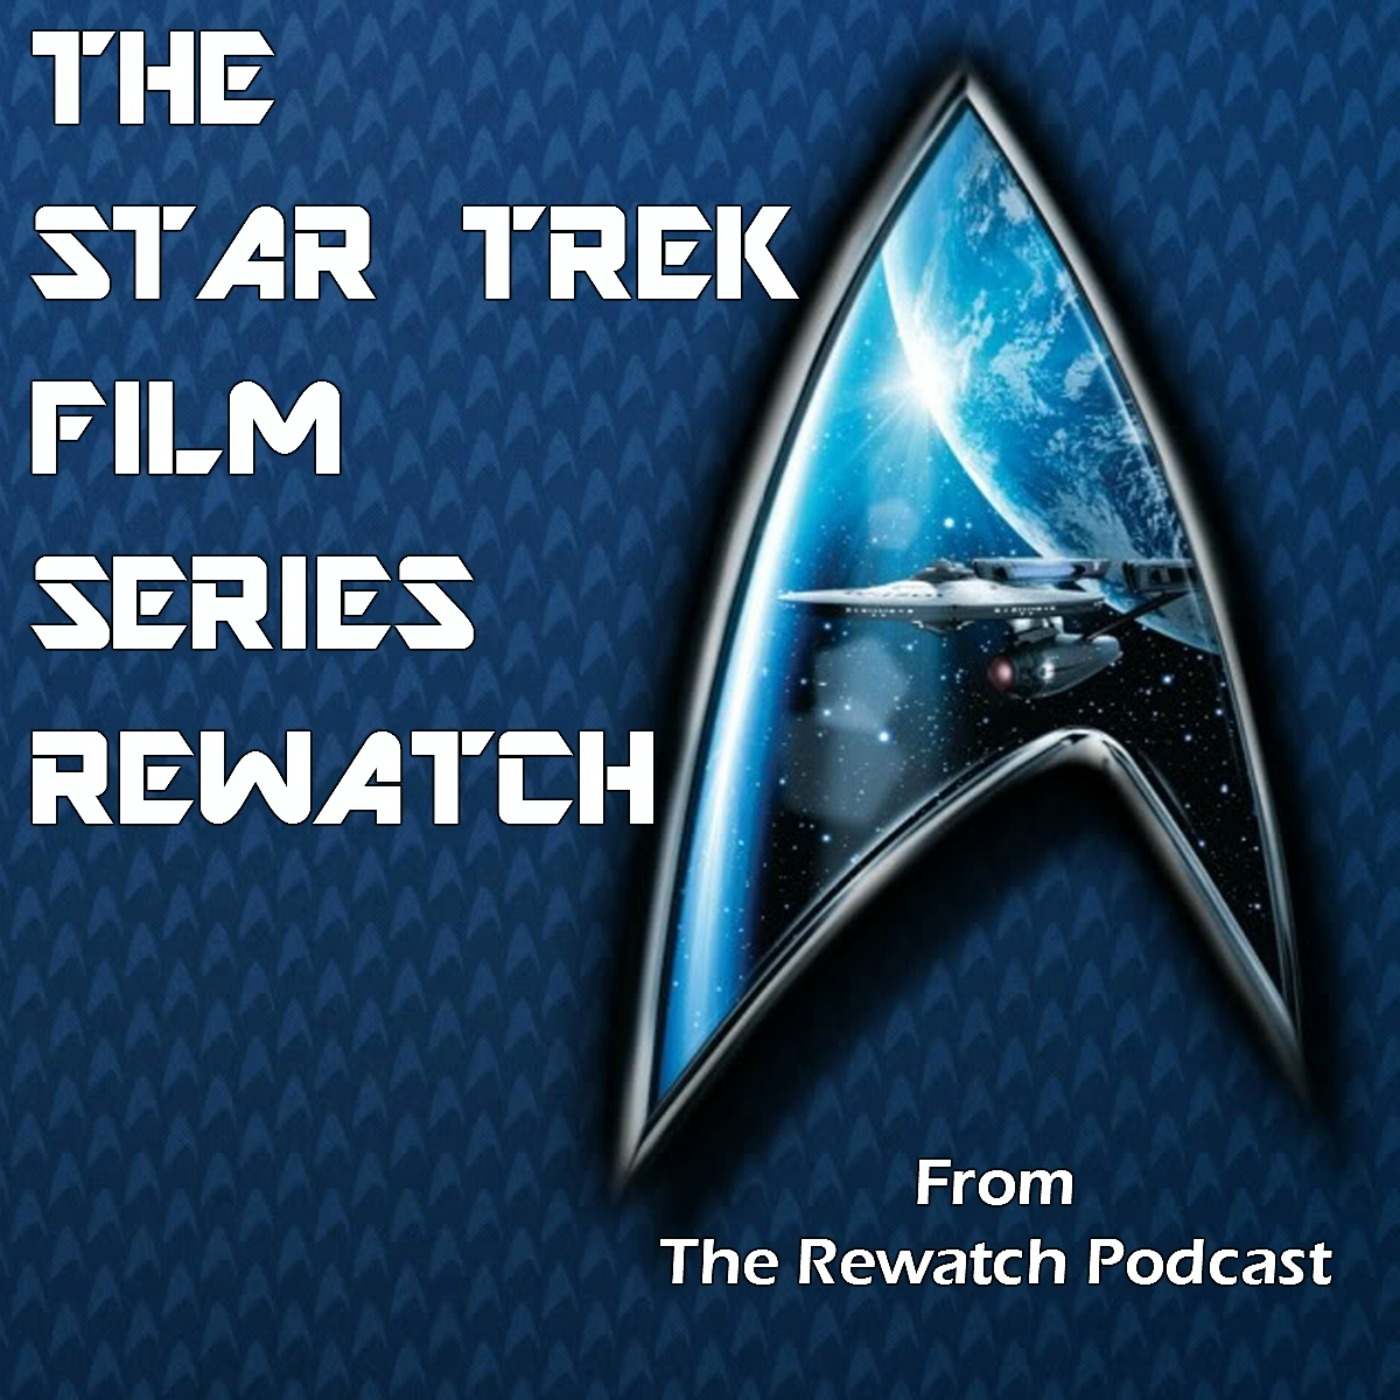 Star Trek Films Rewatch